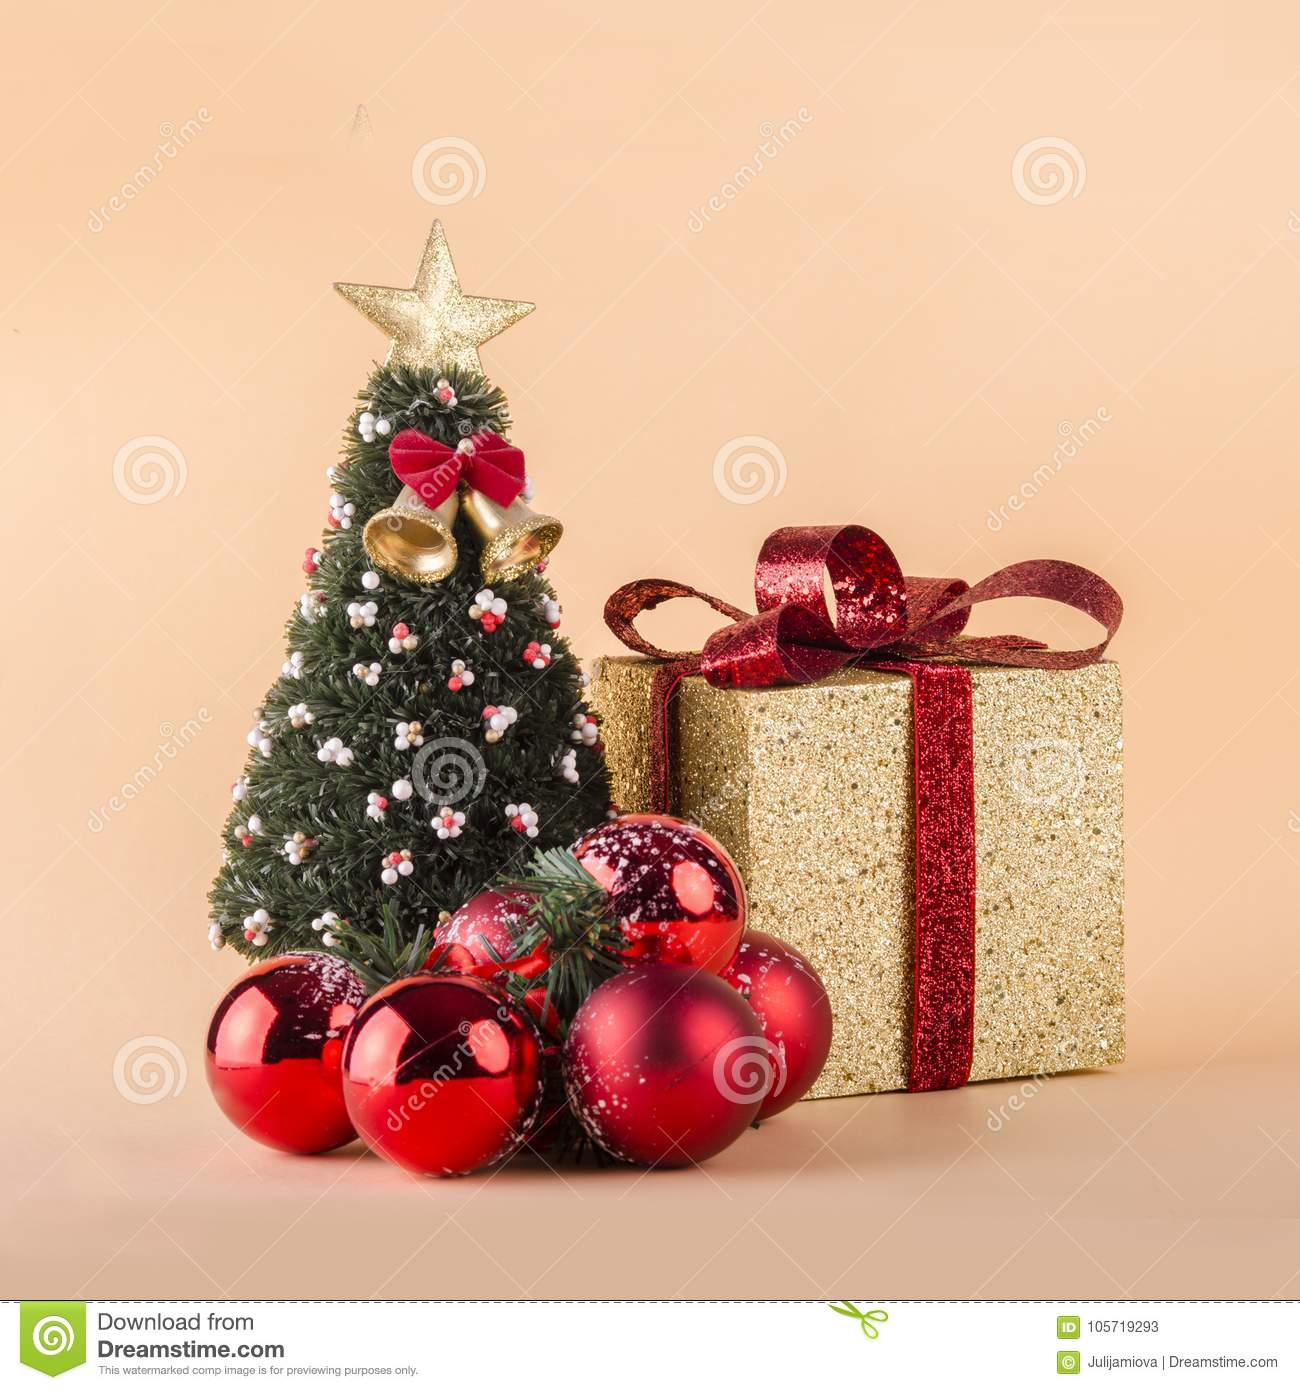 Christmas Card With Ornaments As A Square Format Stock Image - Image ...